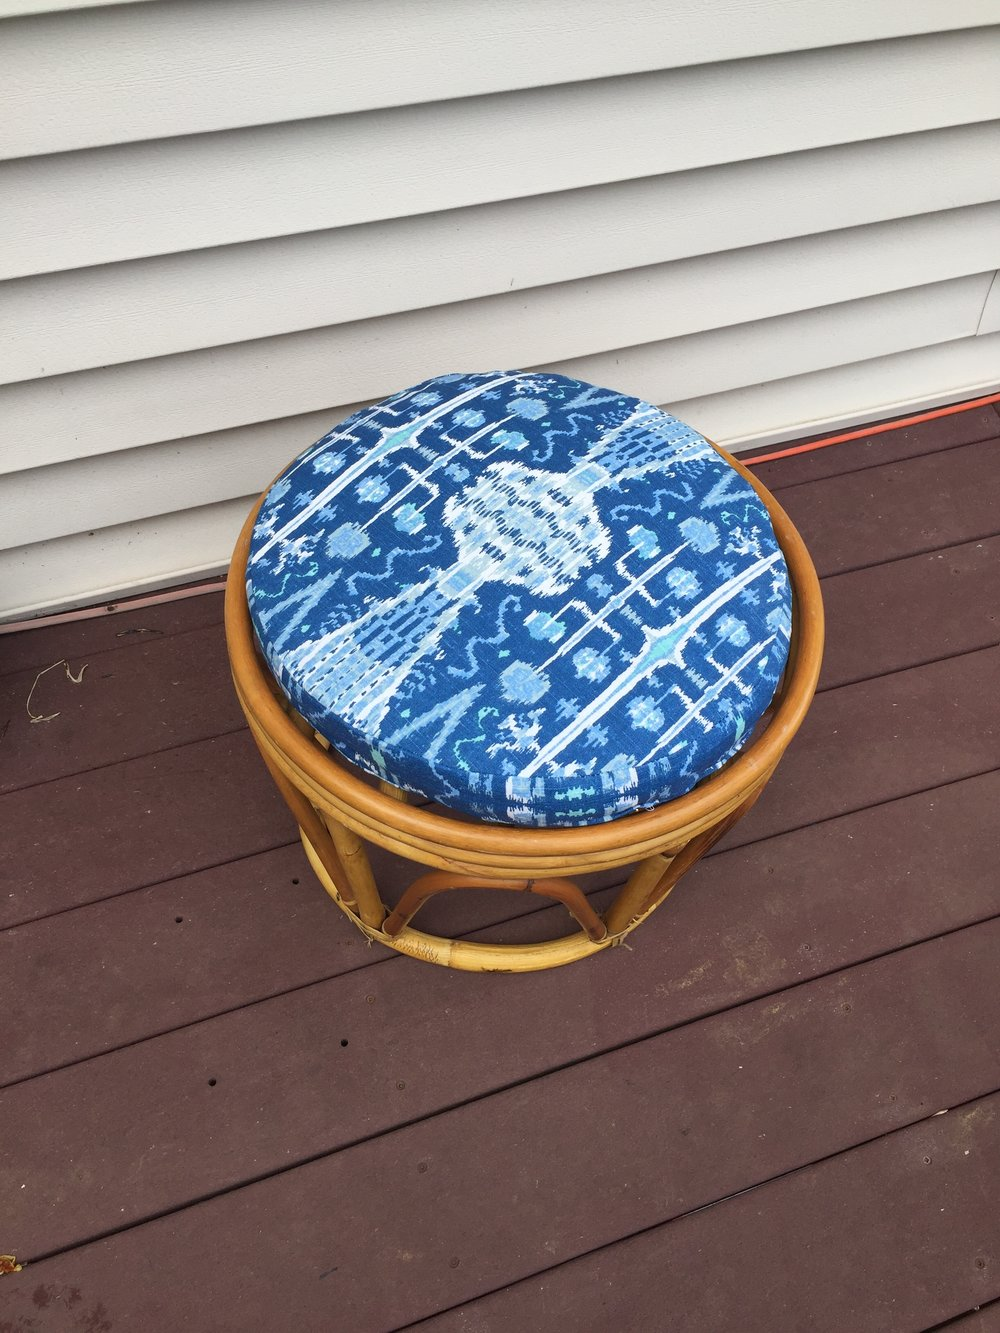 The cushion featured medium grade upholstery fabric in a bright cobalt blue ikat print. Perfect for bohemian and eclectic decors.